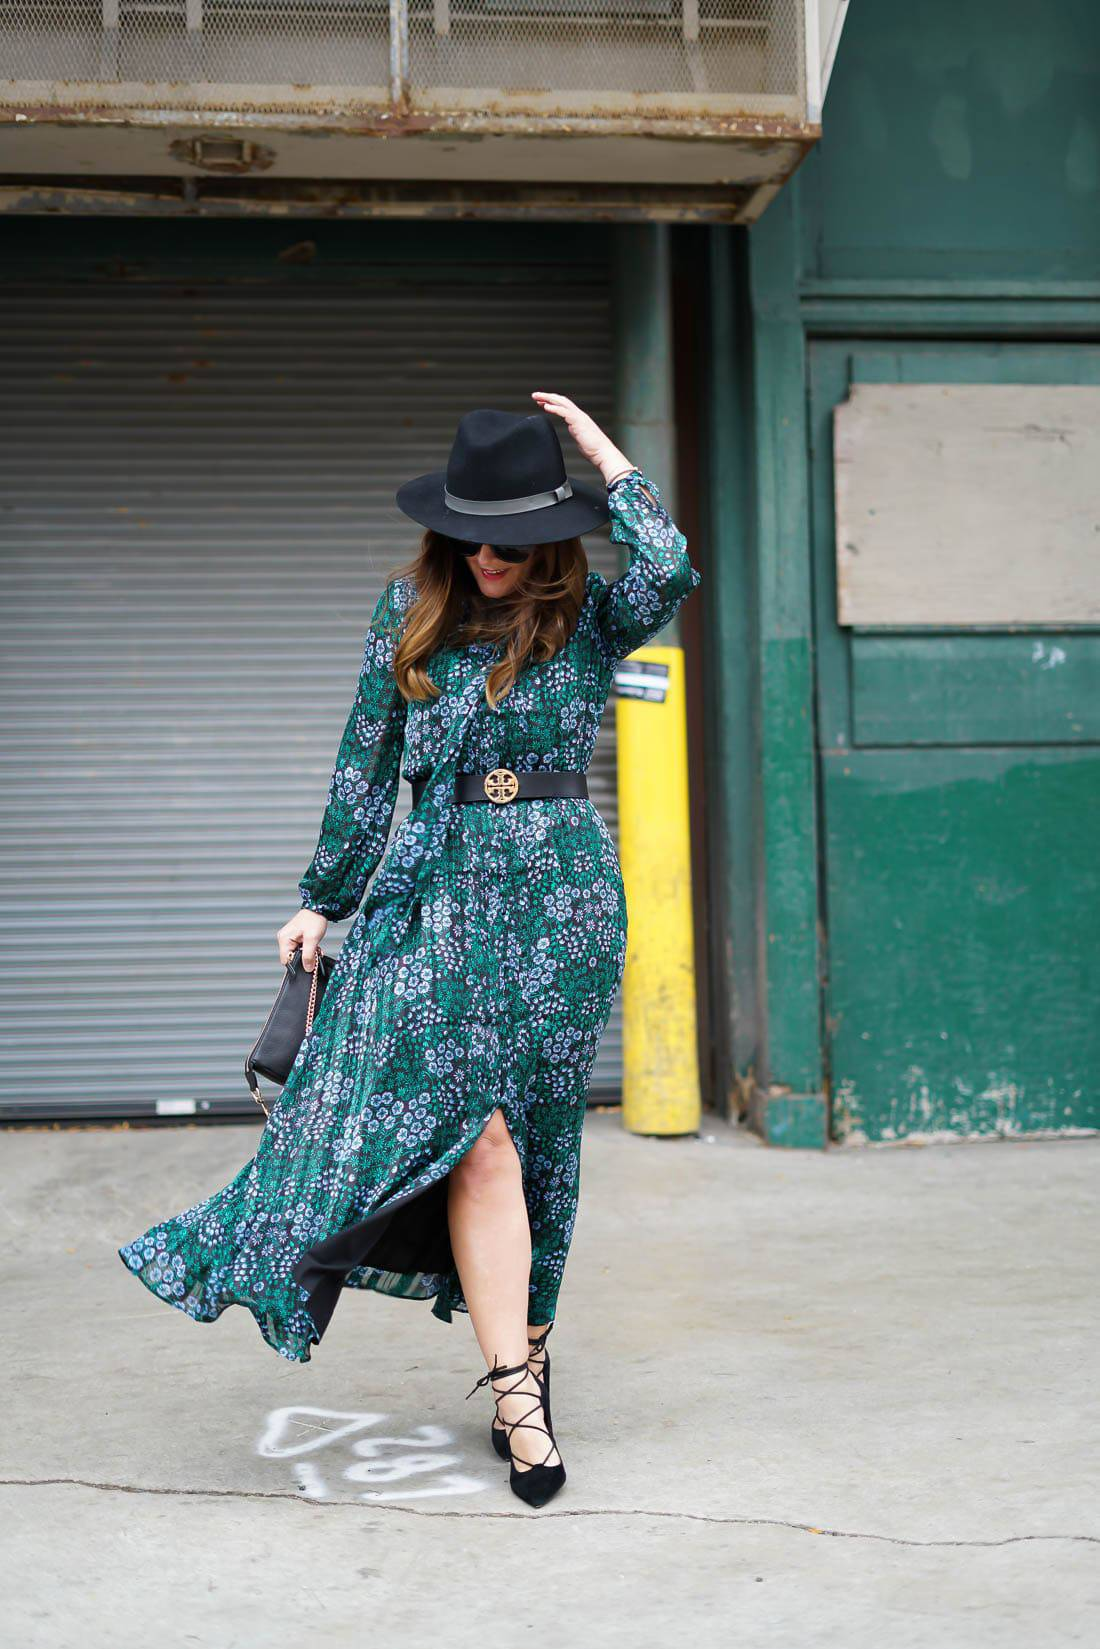 Banana Republic Floral Maxi Dress, Sole Society Lace-Up Heels, Sole Society Black Fedora, Tory Burch Reversable Belt, Chicago Blogger, Fall Style, Womens Fall Fashion, Miu Miu Sunglasses